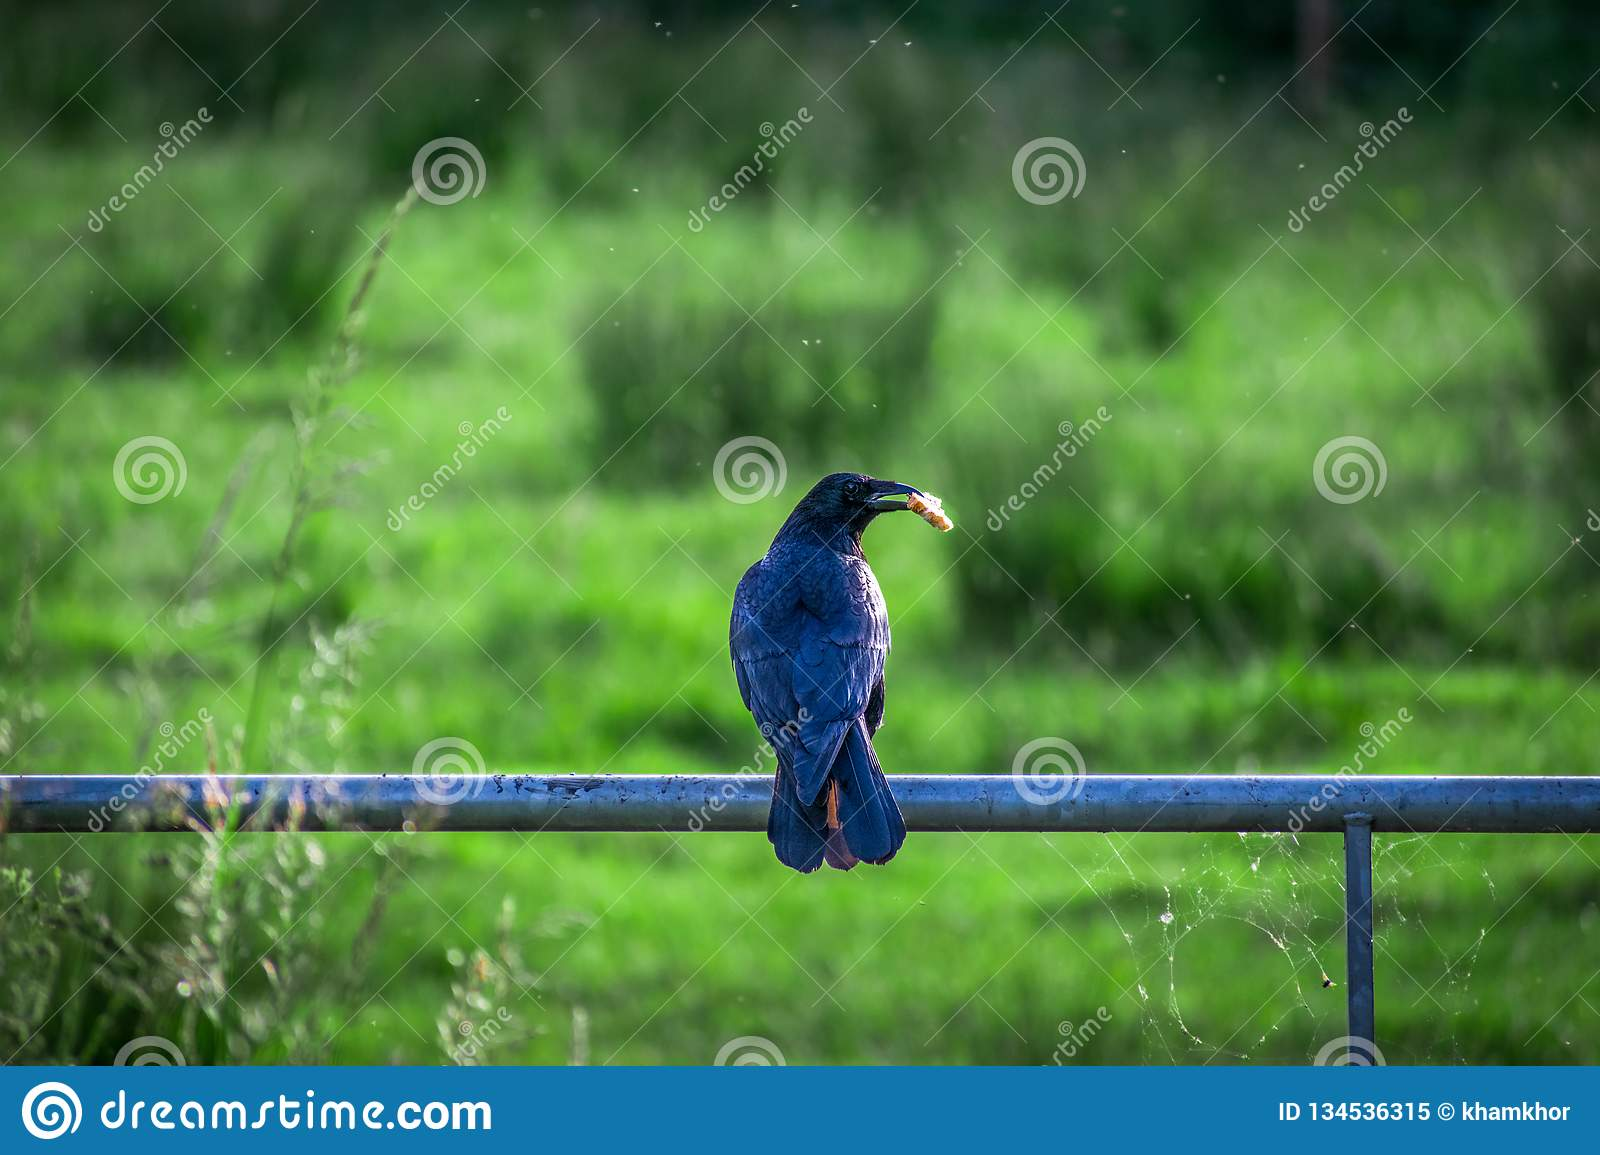 Closeup of Black crow holding some bread and eating snack on a metal fence in the park in a summer day royalty free stock photo